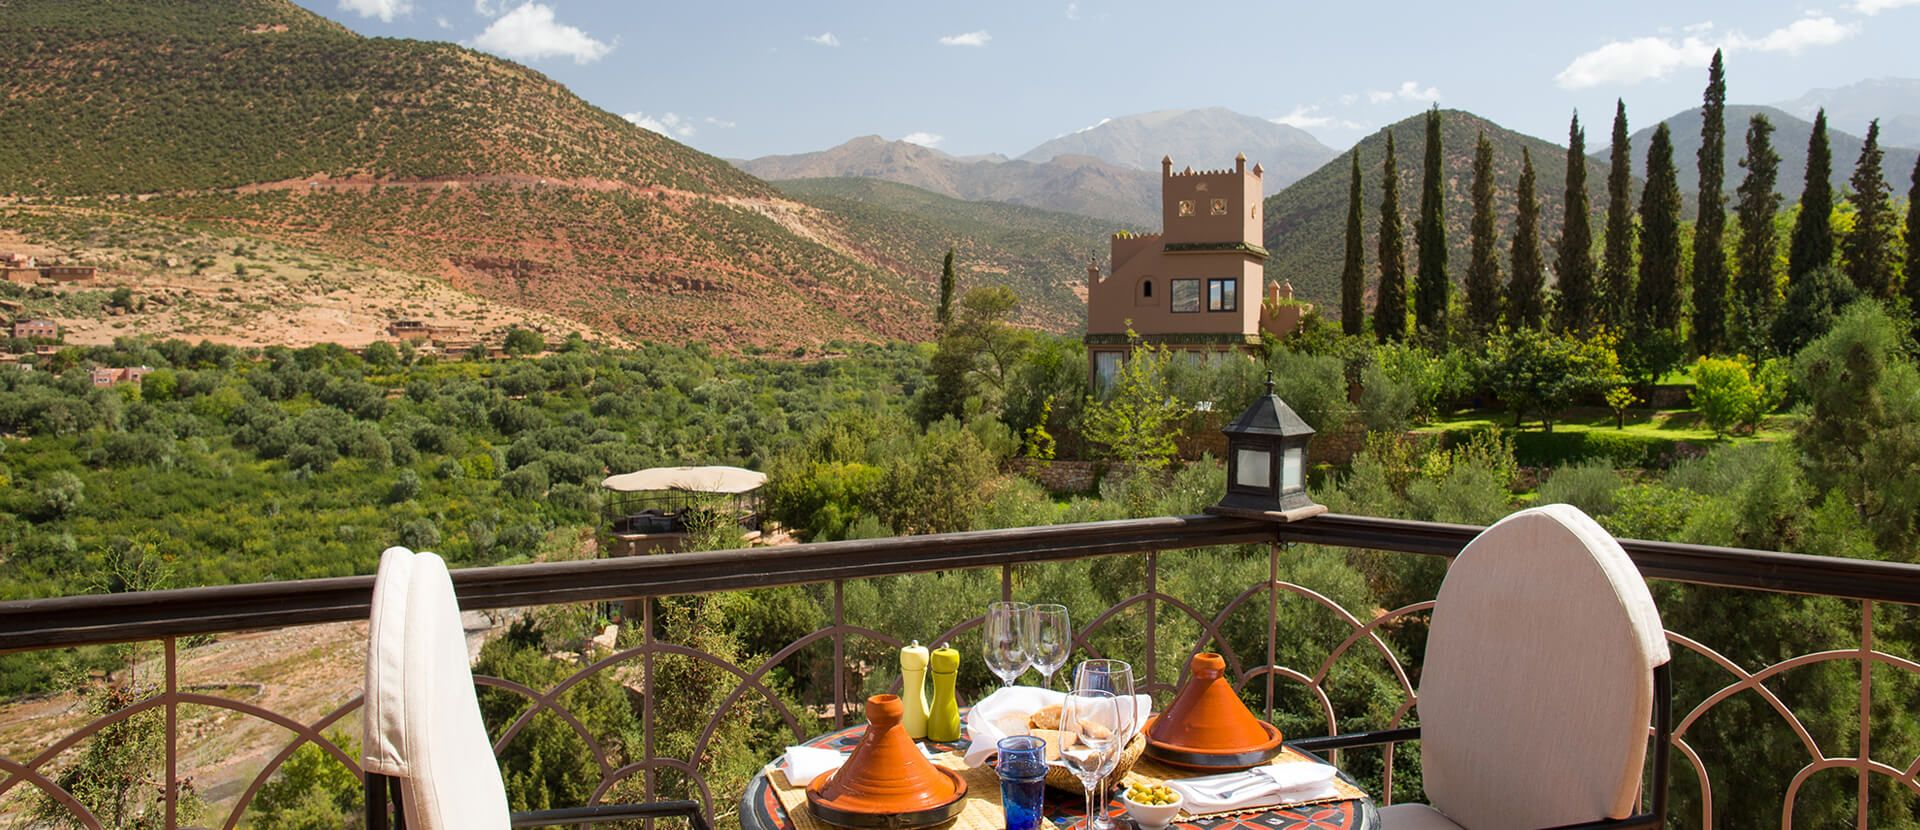 Kasbah Tamadot, Atlas Mountains